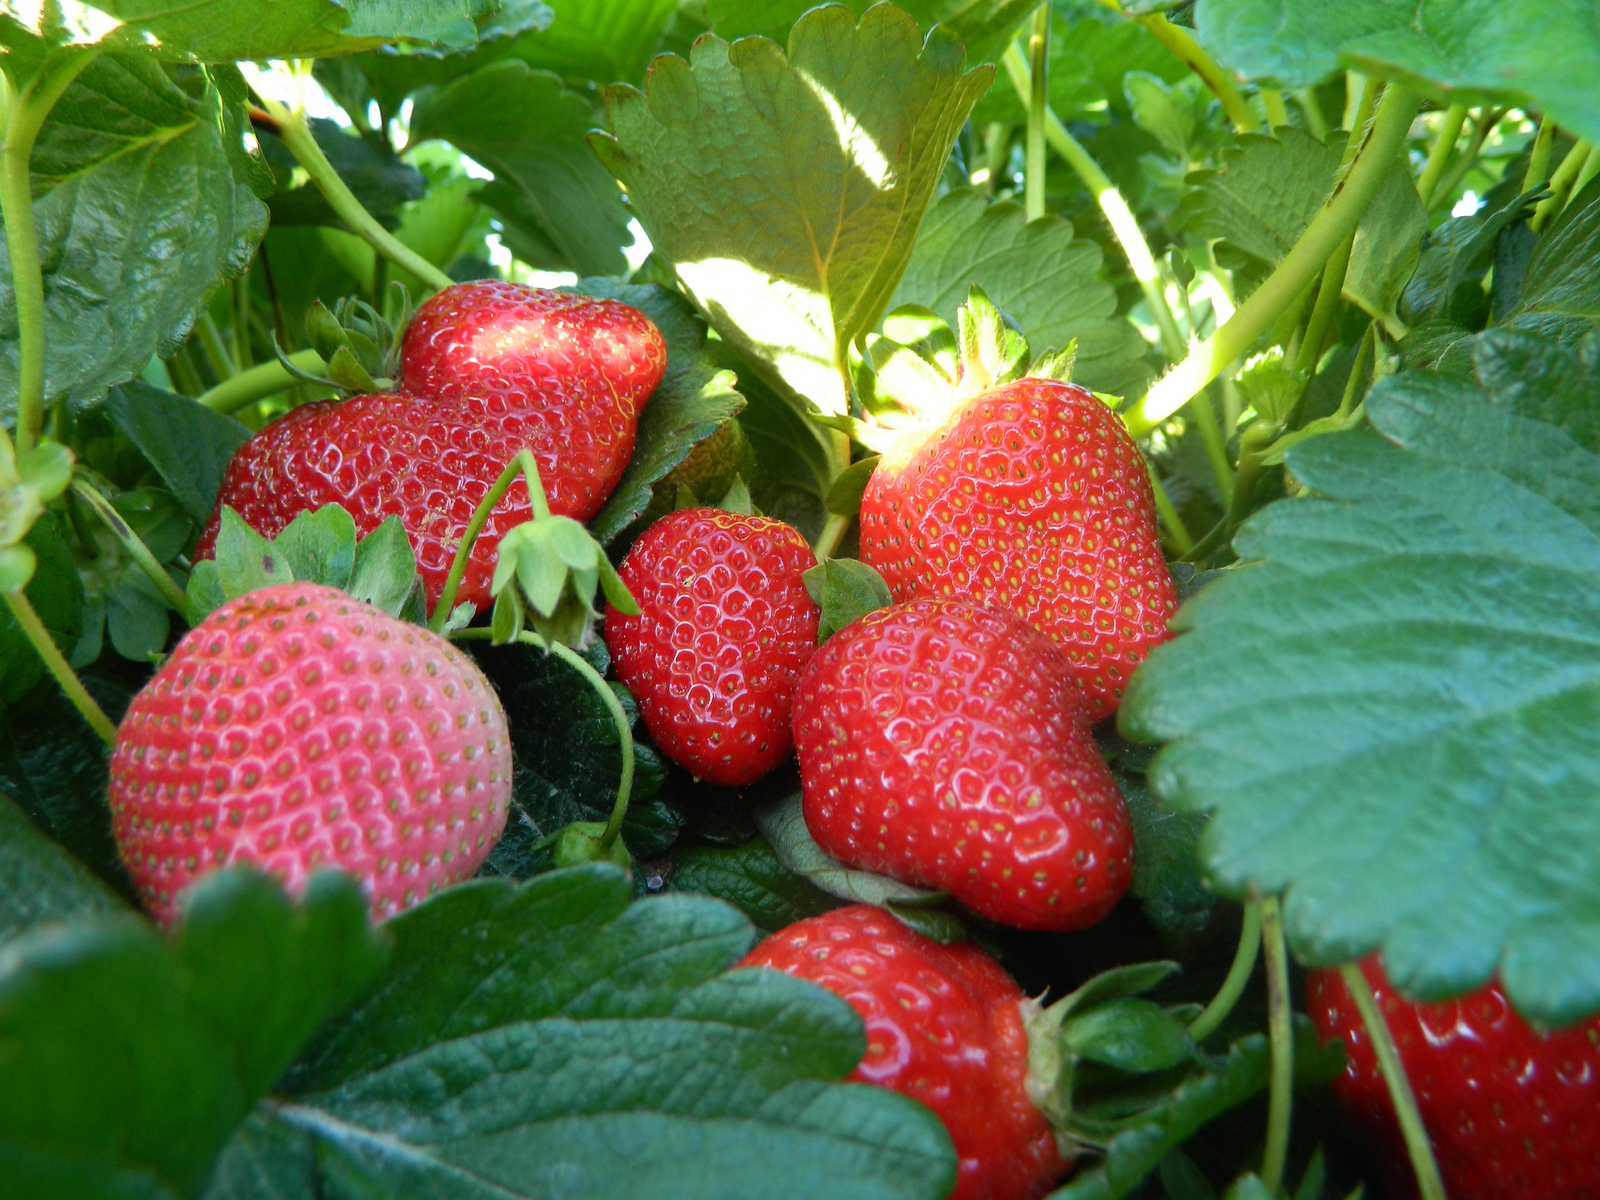 Strawberry prices stop falling at last